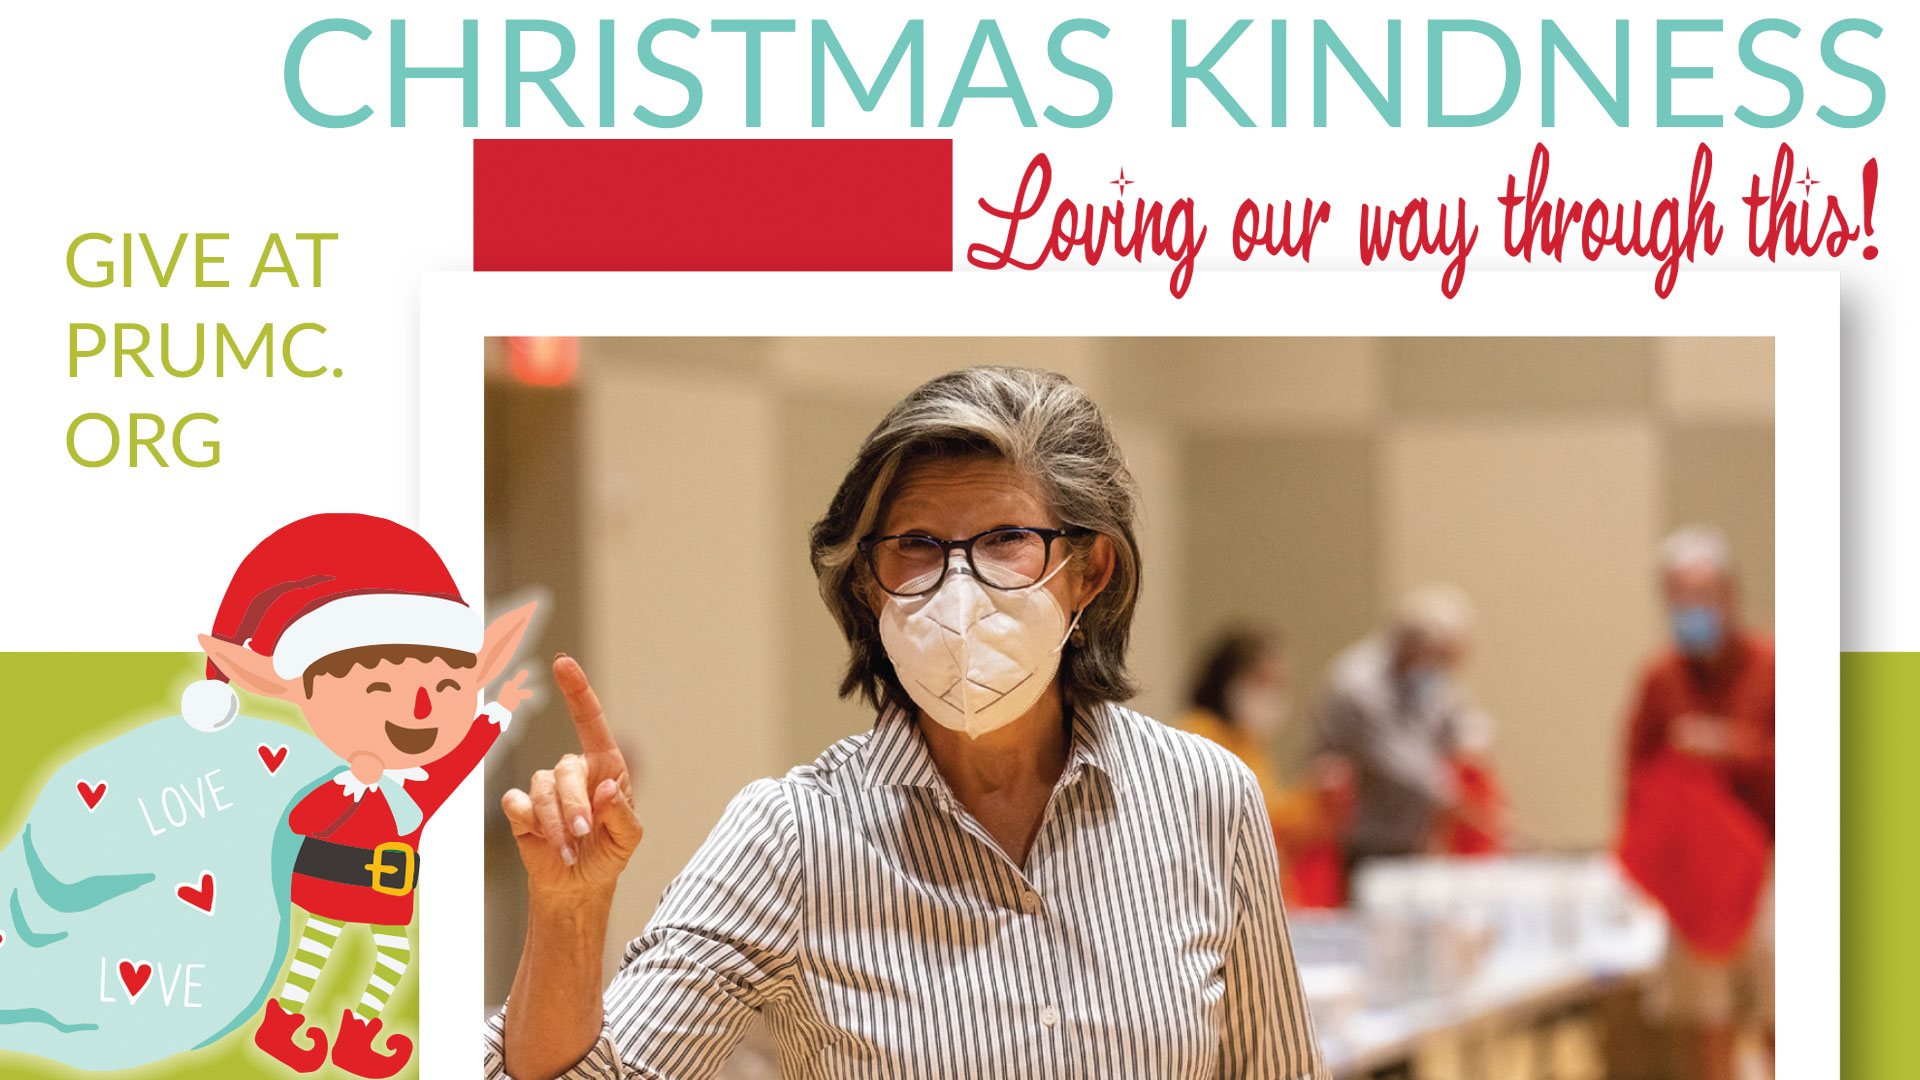 Christmas Kindness 2020 Loving Our Way Through This